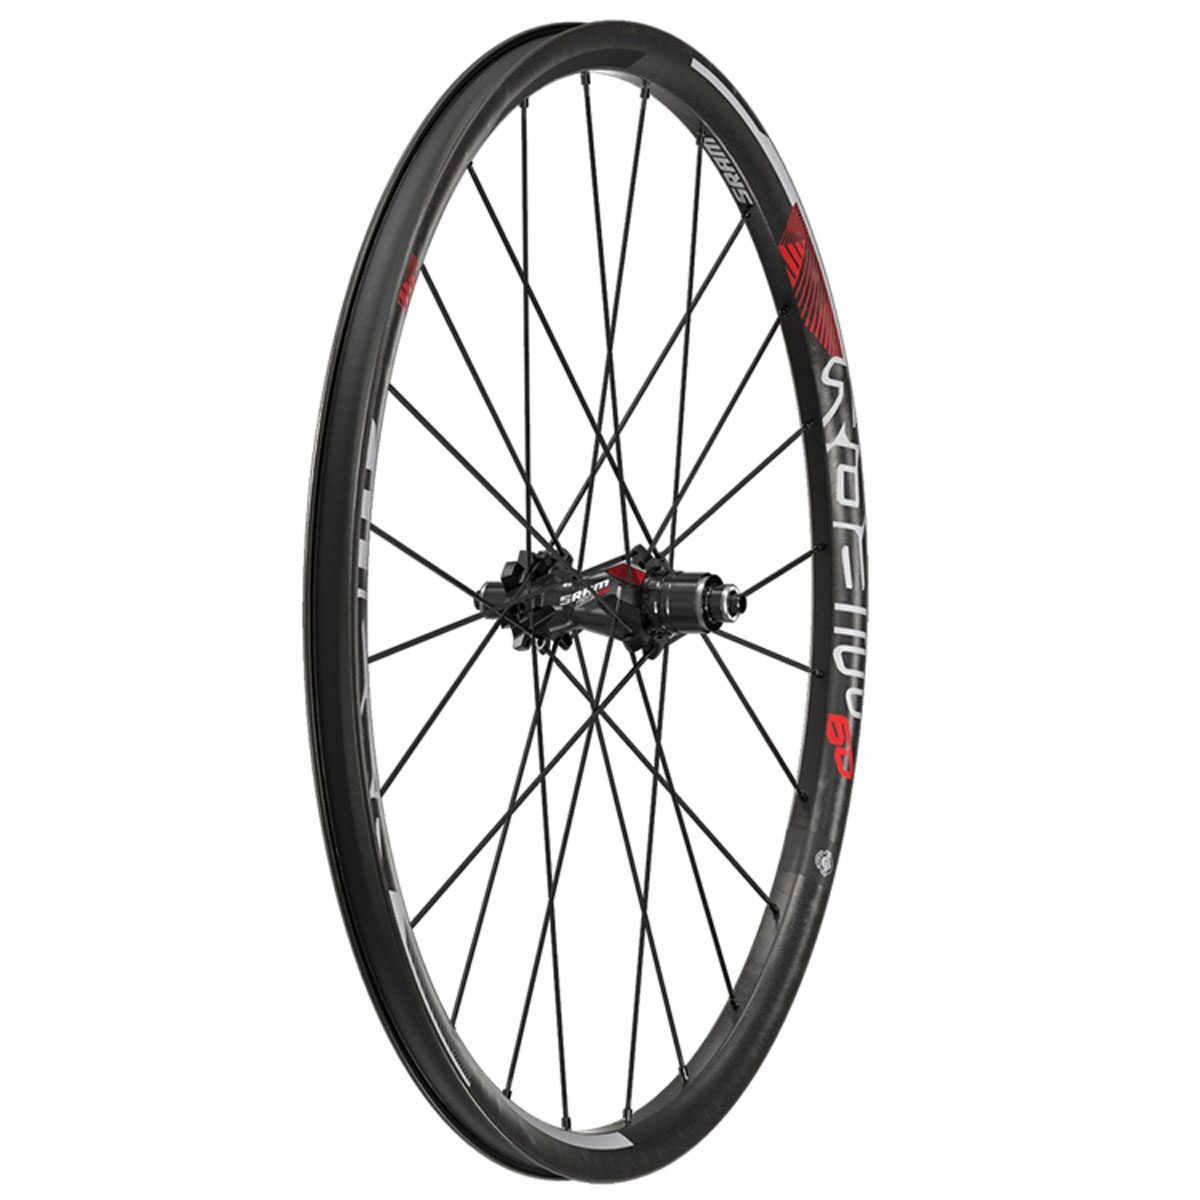 "SRAM Roam 60 Rear 29"" UST XD 11/12-S Wheel QRx135mm/12x142mm End Caps"